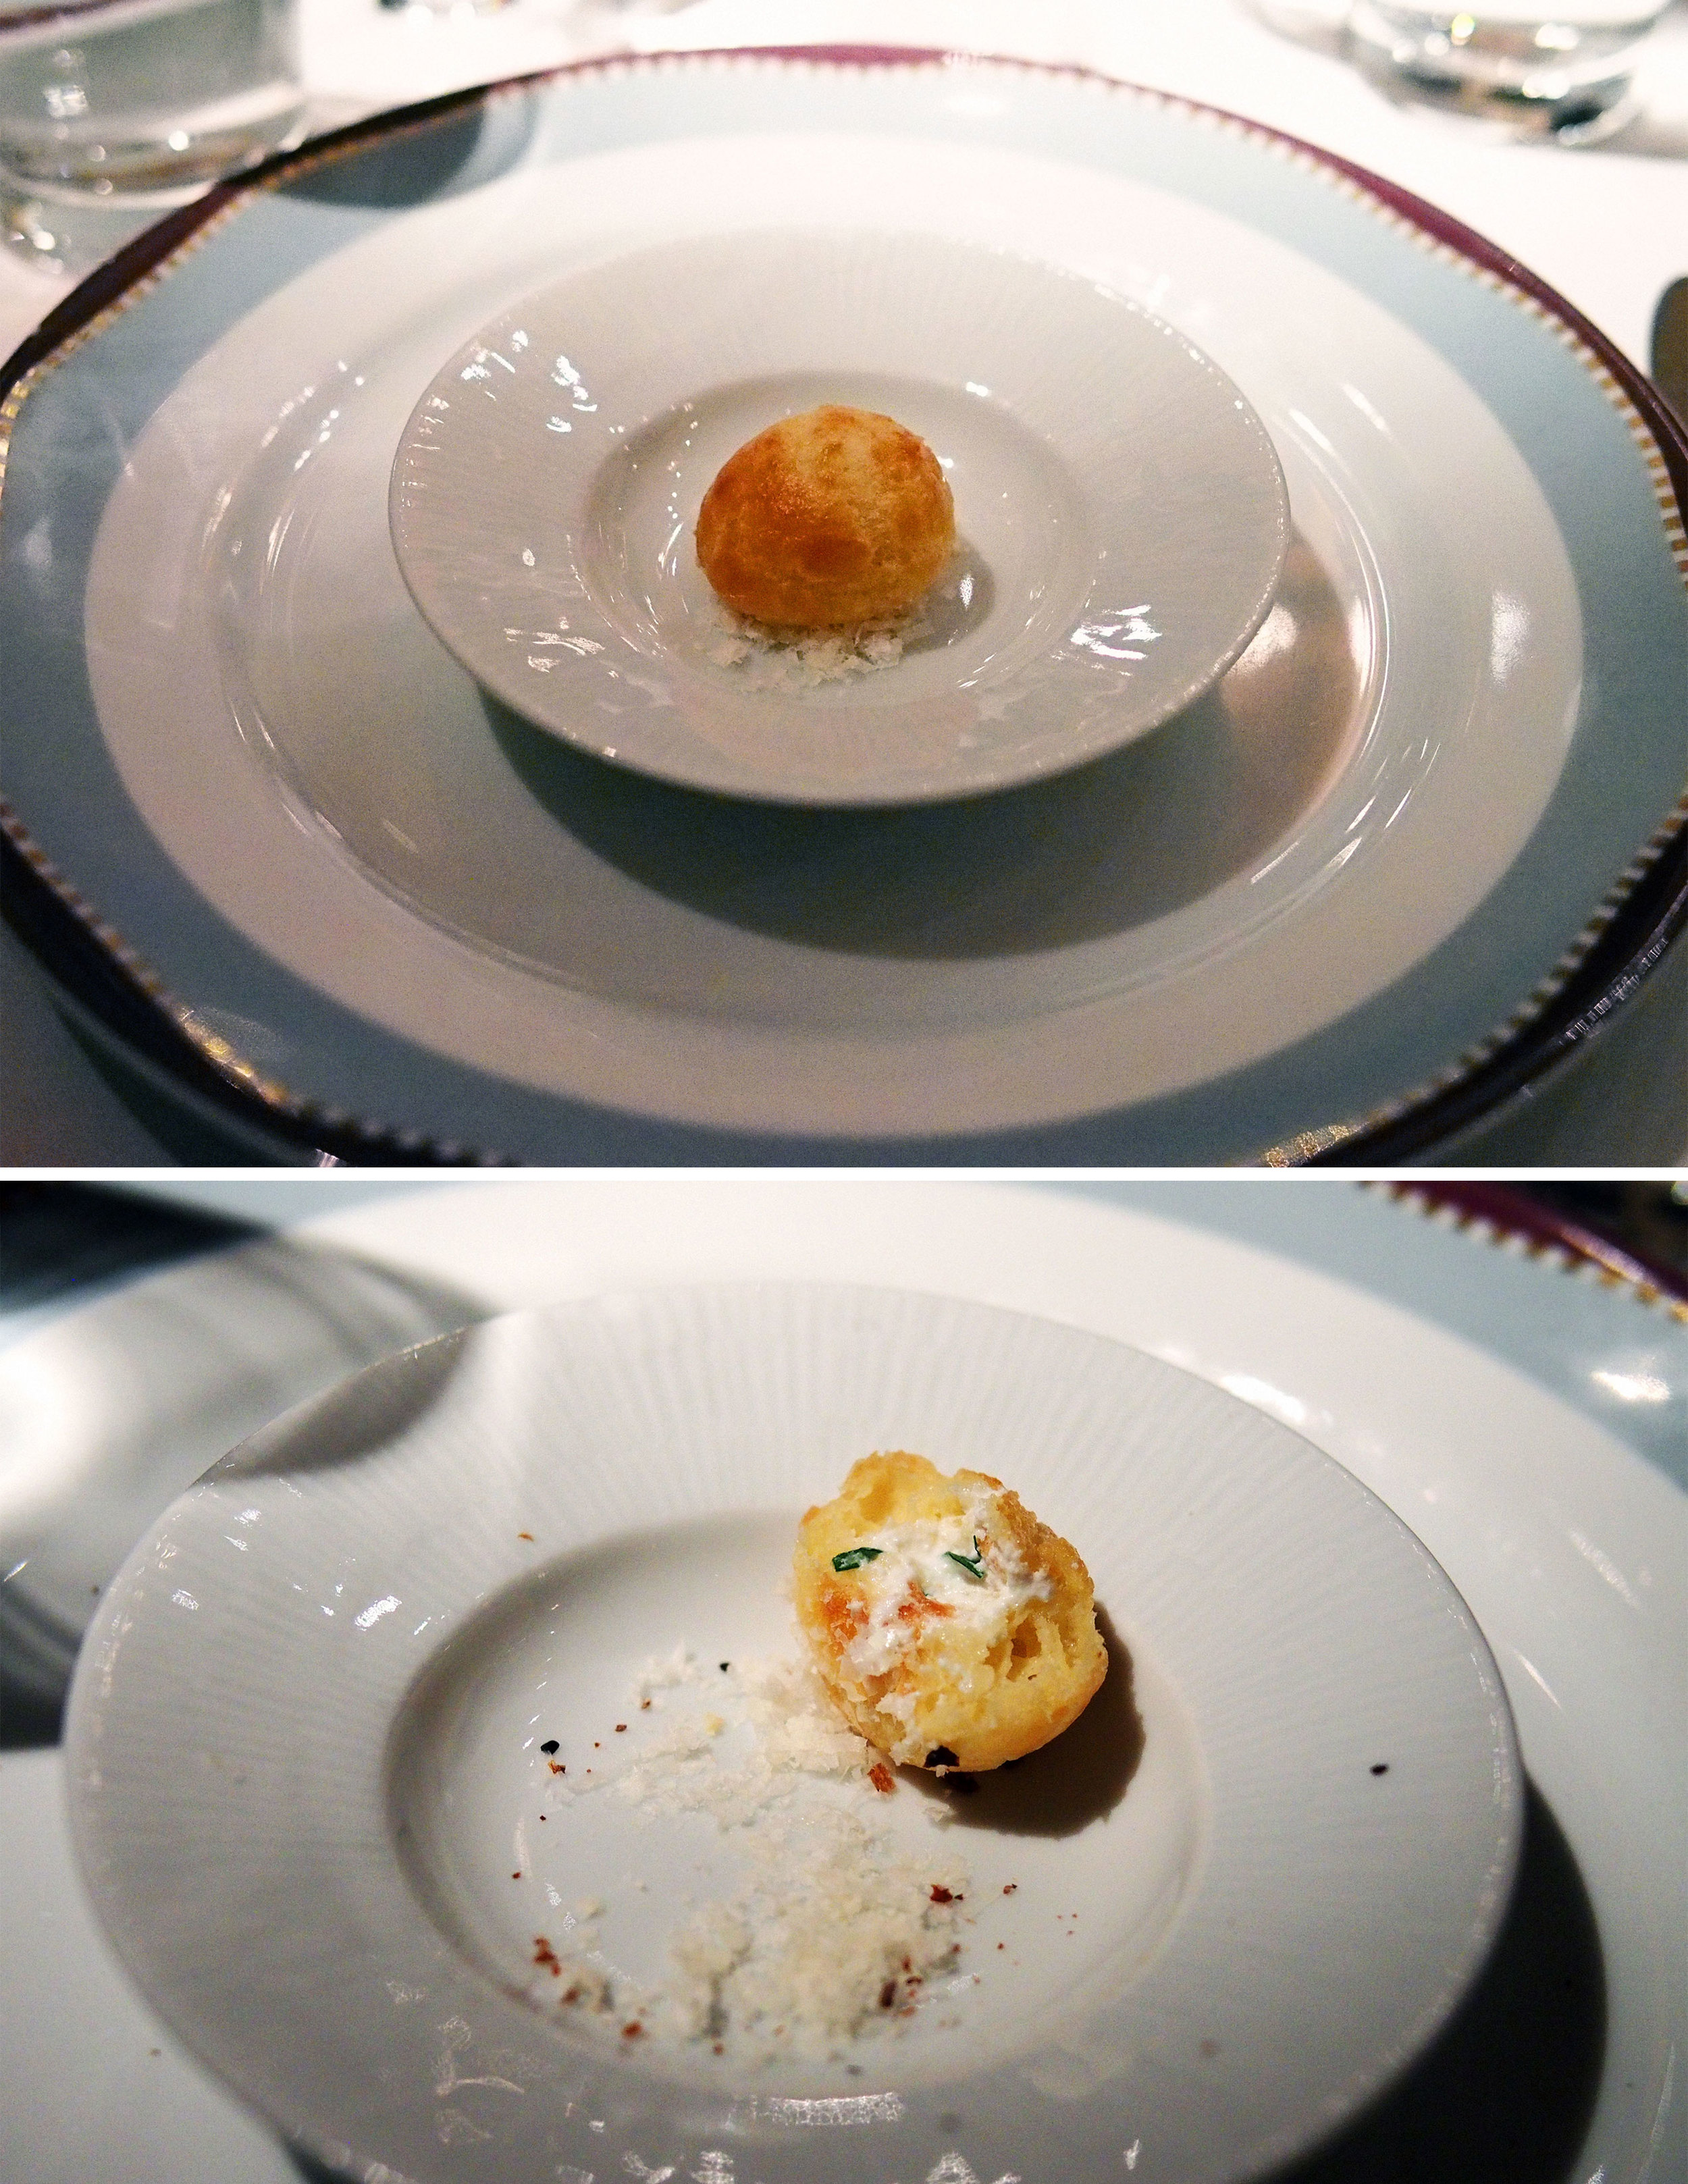 goat cheese pastry with tarragon and fleur de sel